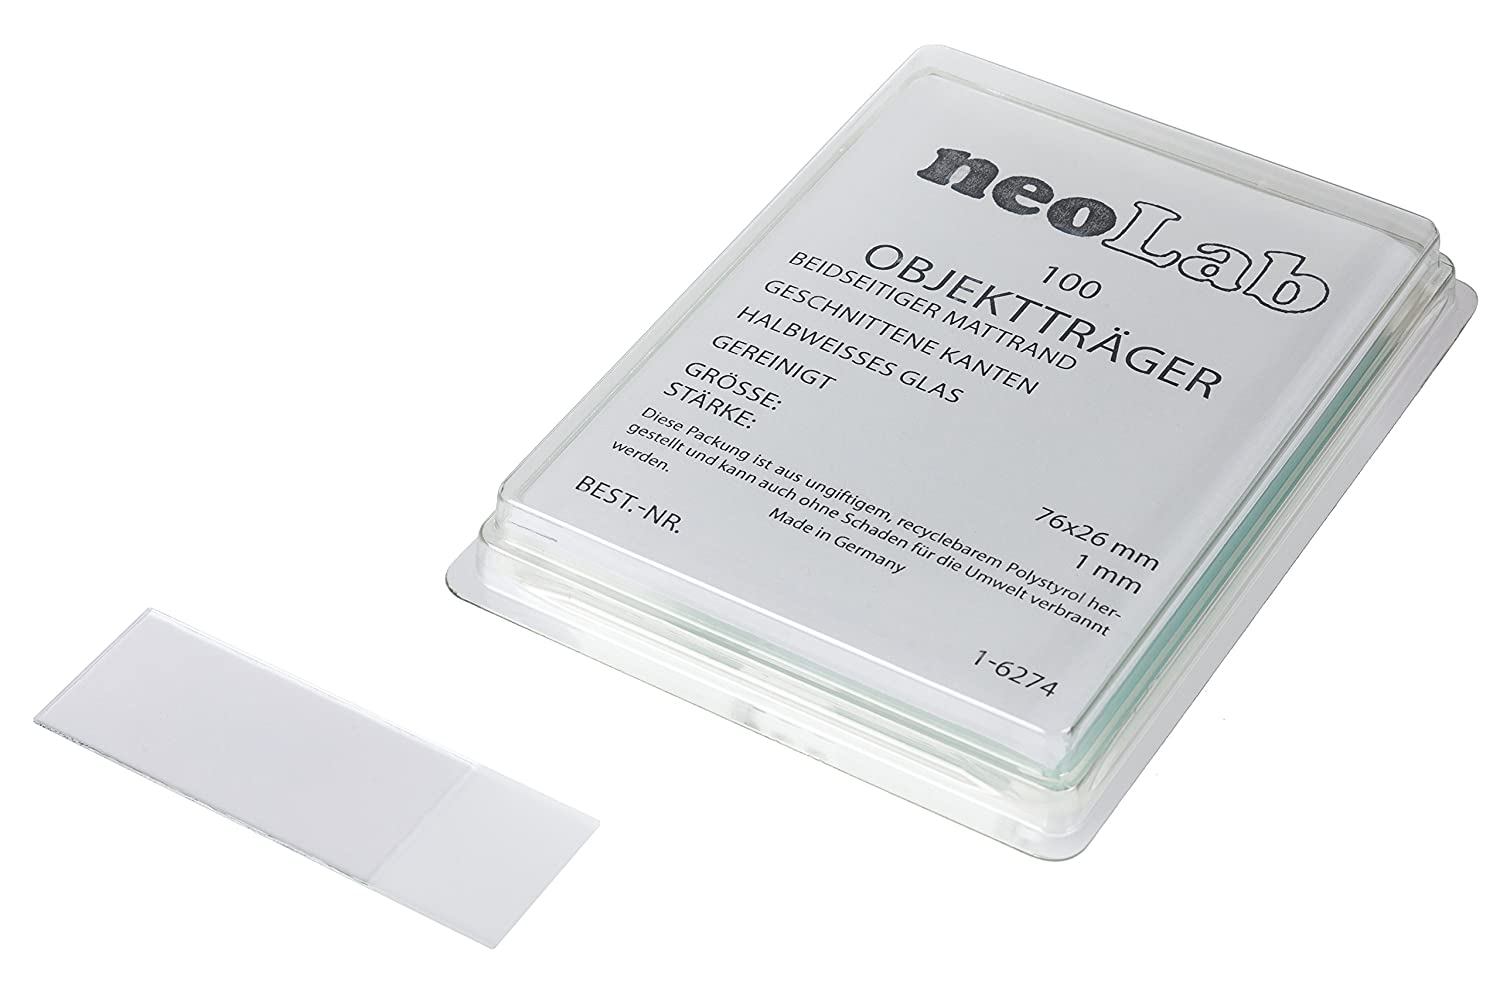 Neolab 1 6274 Slides with Matte Edge Edge Cut, 76 mm x 26 mm White (Pack of 100) 76mm x 26mm White (Pack of 100) 1-6274